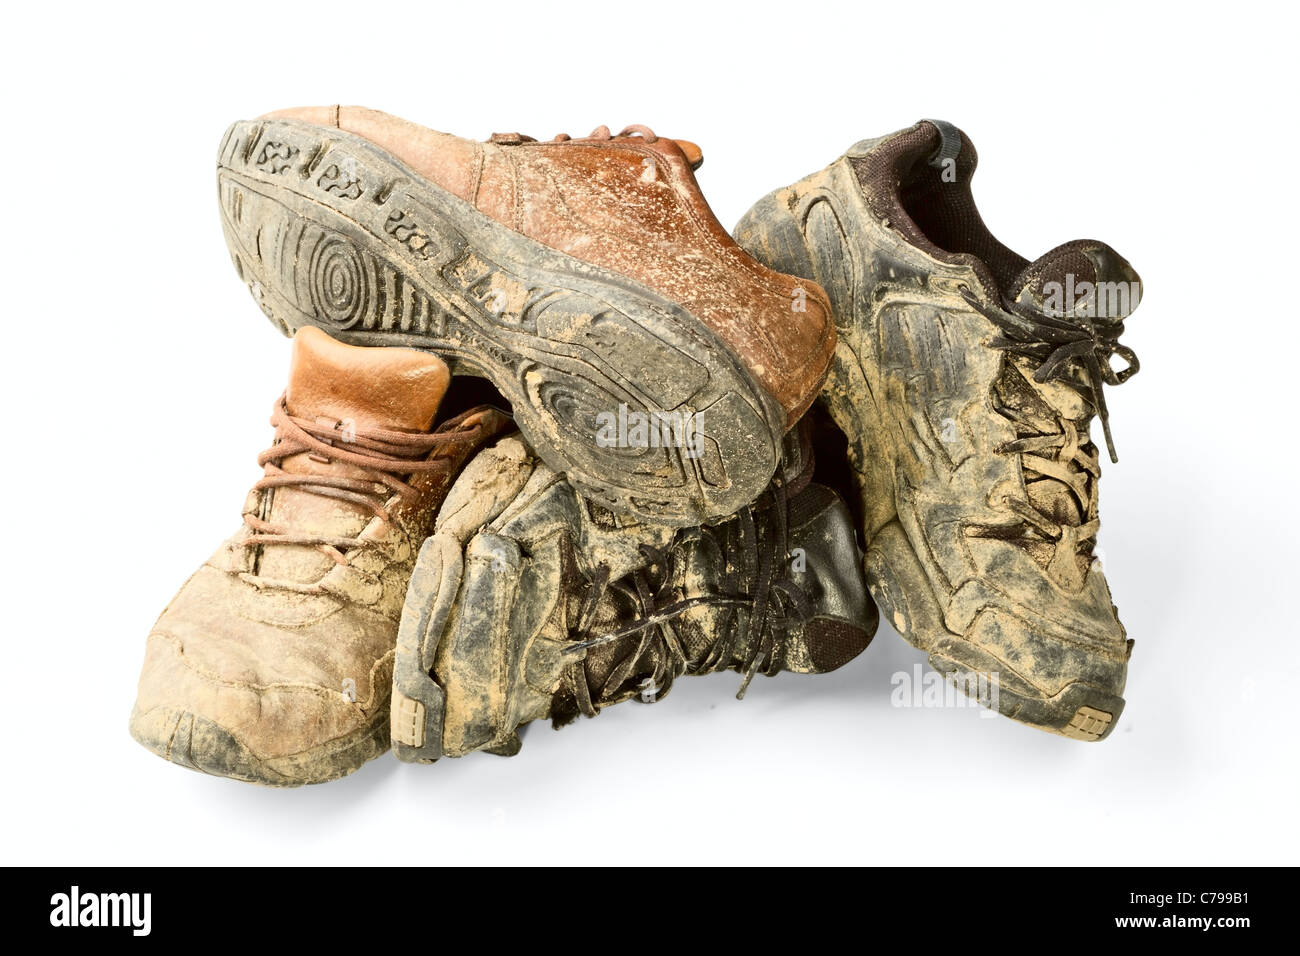 dirty trainer isolated on a white background - Stock Image